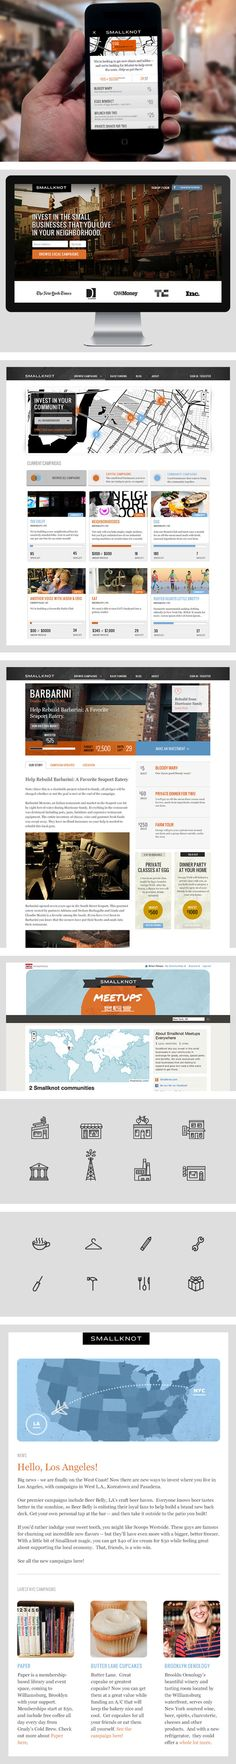 Smallknot by Brian Pelayo, via Behance *** Smallknot is the best way to fund and connect with the local businesses that you love in your neighborhood.